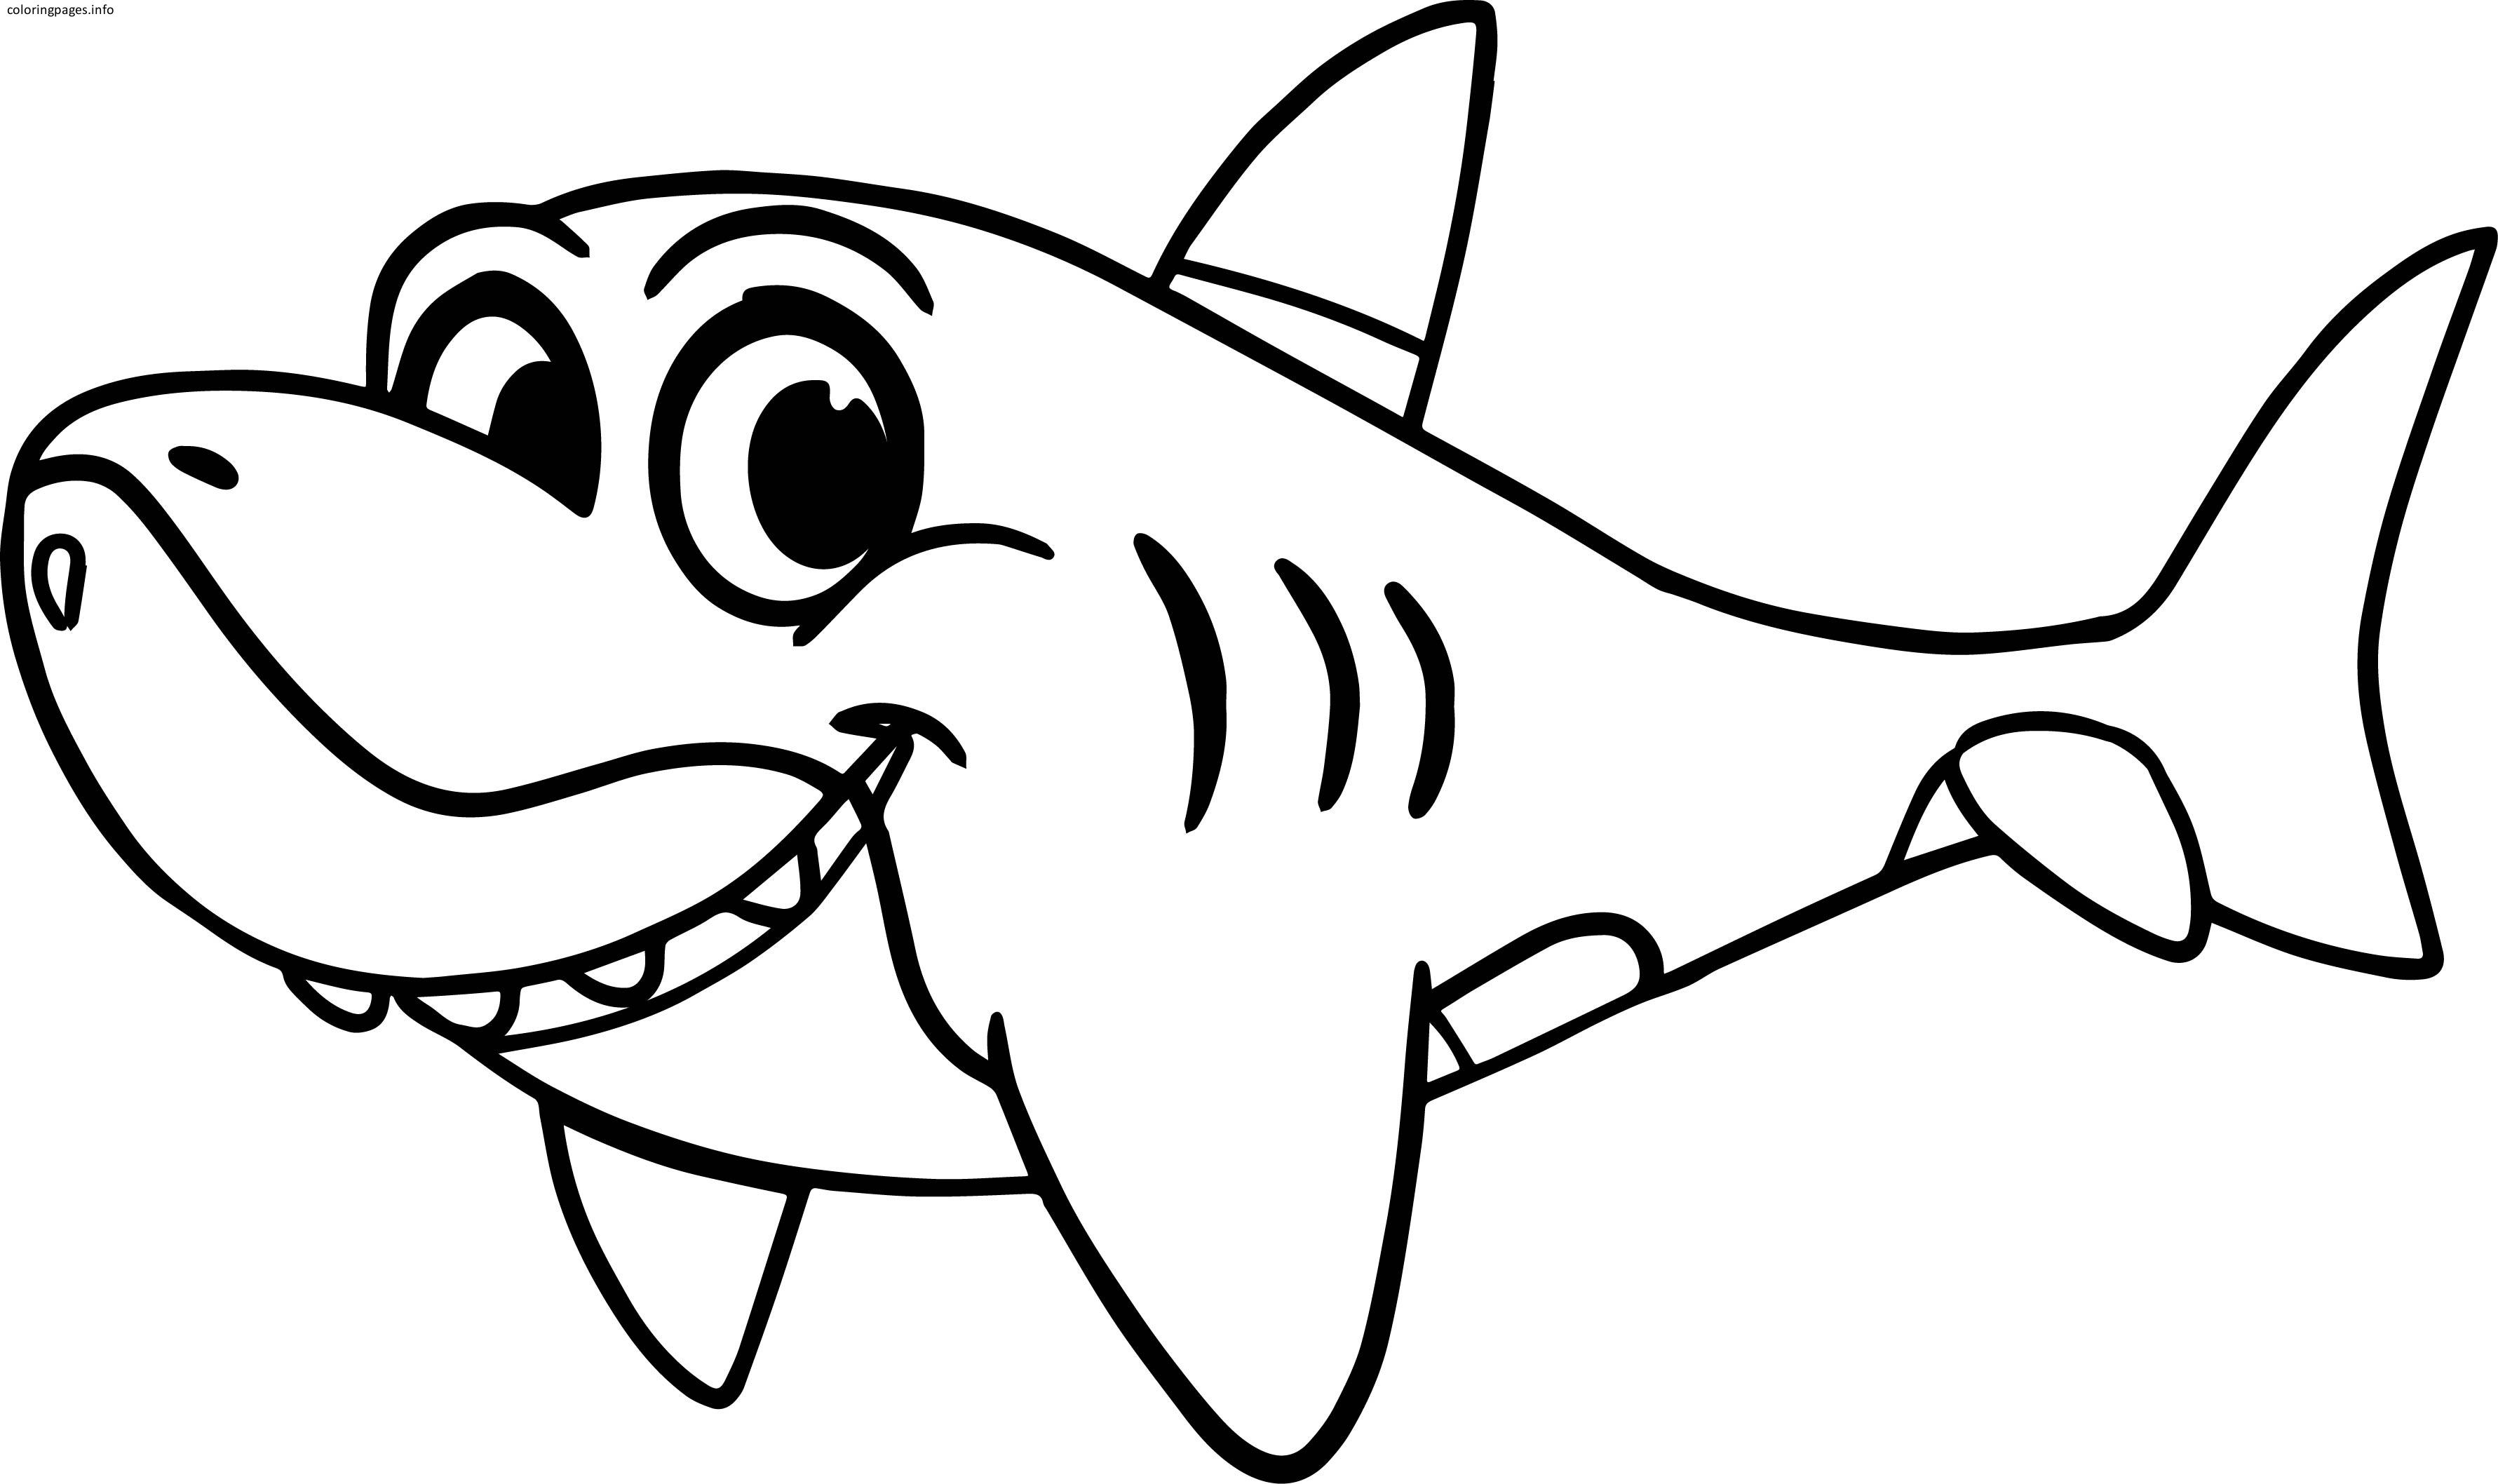 shark picture to color coloring pages shark coloring pages free and printable shark picture color to